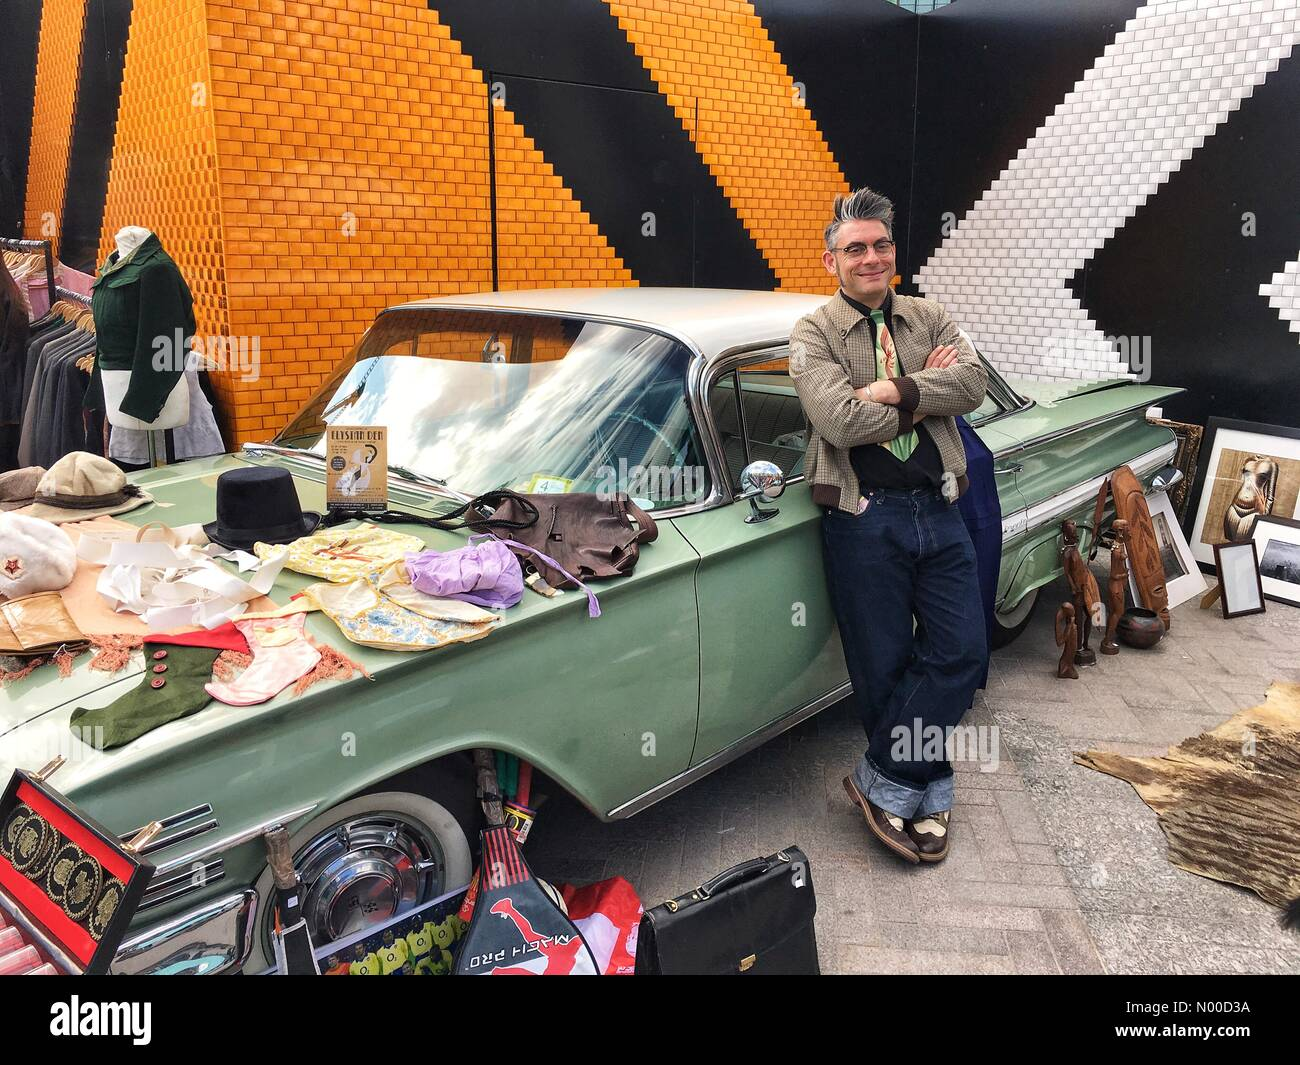 Stable St, London, UK. 23rd Apr, 2017. A trader lined up next to a ...